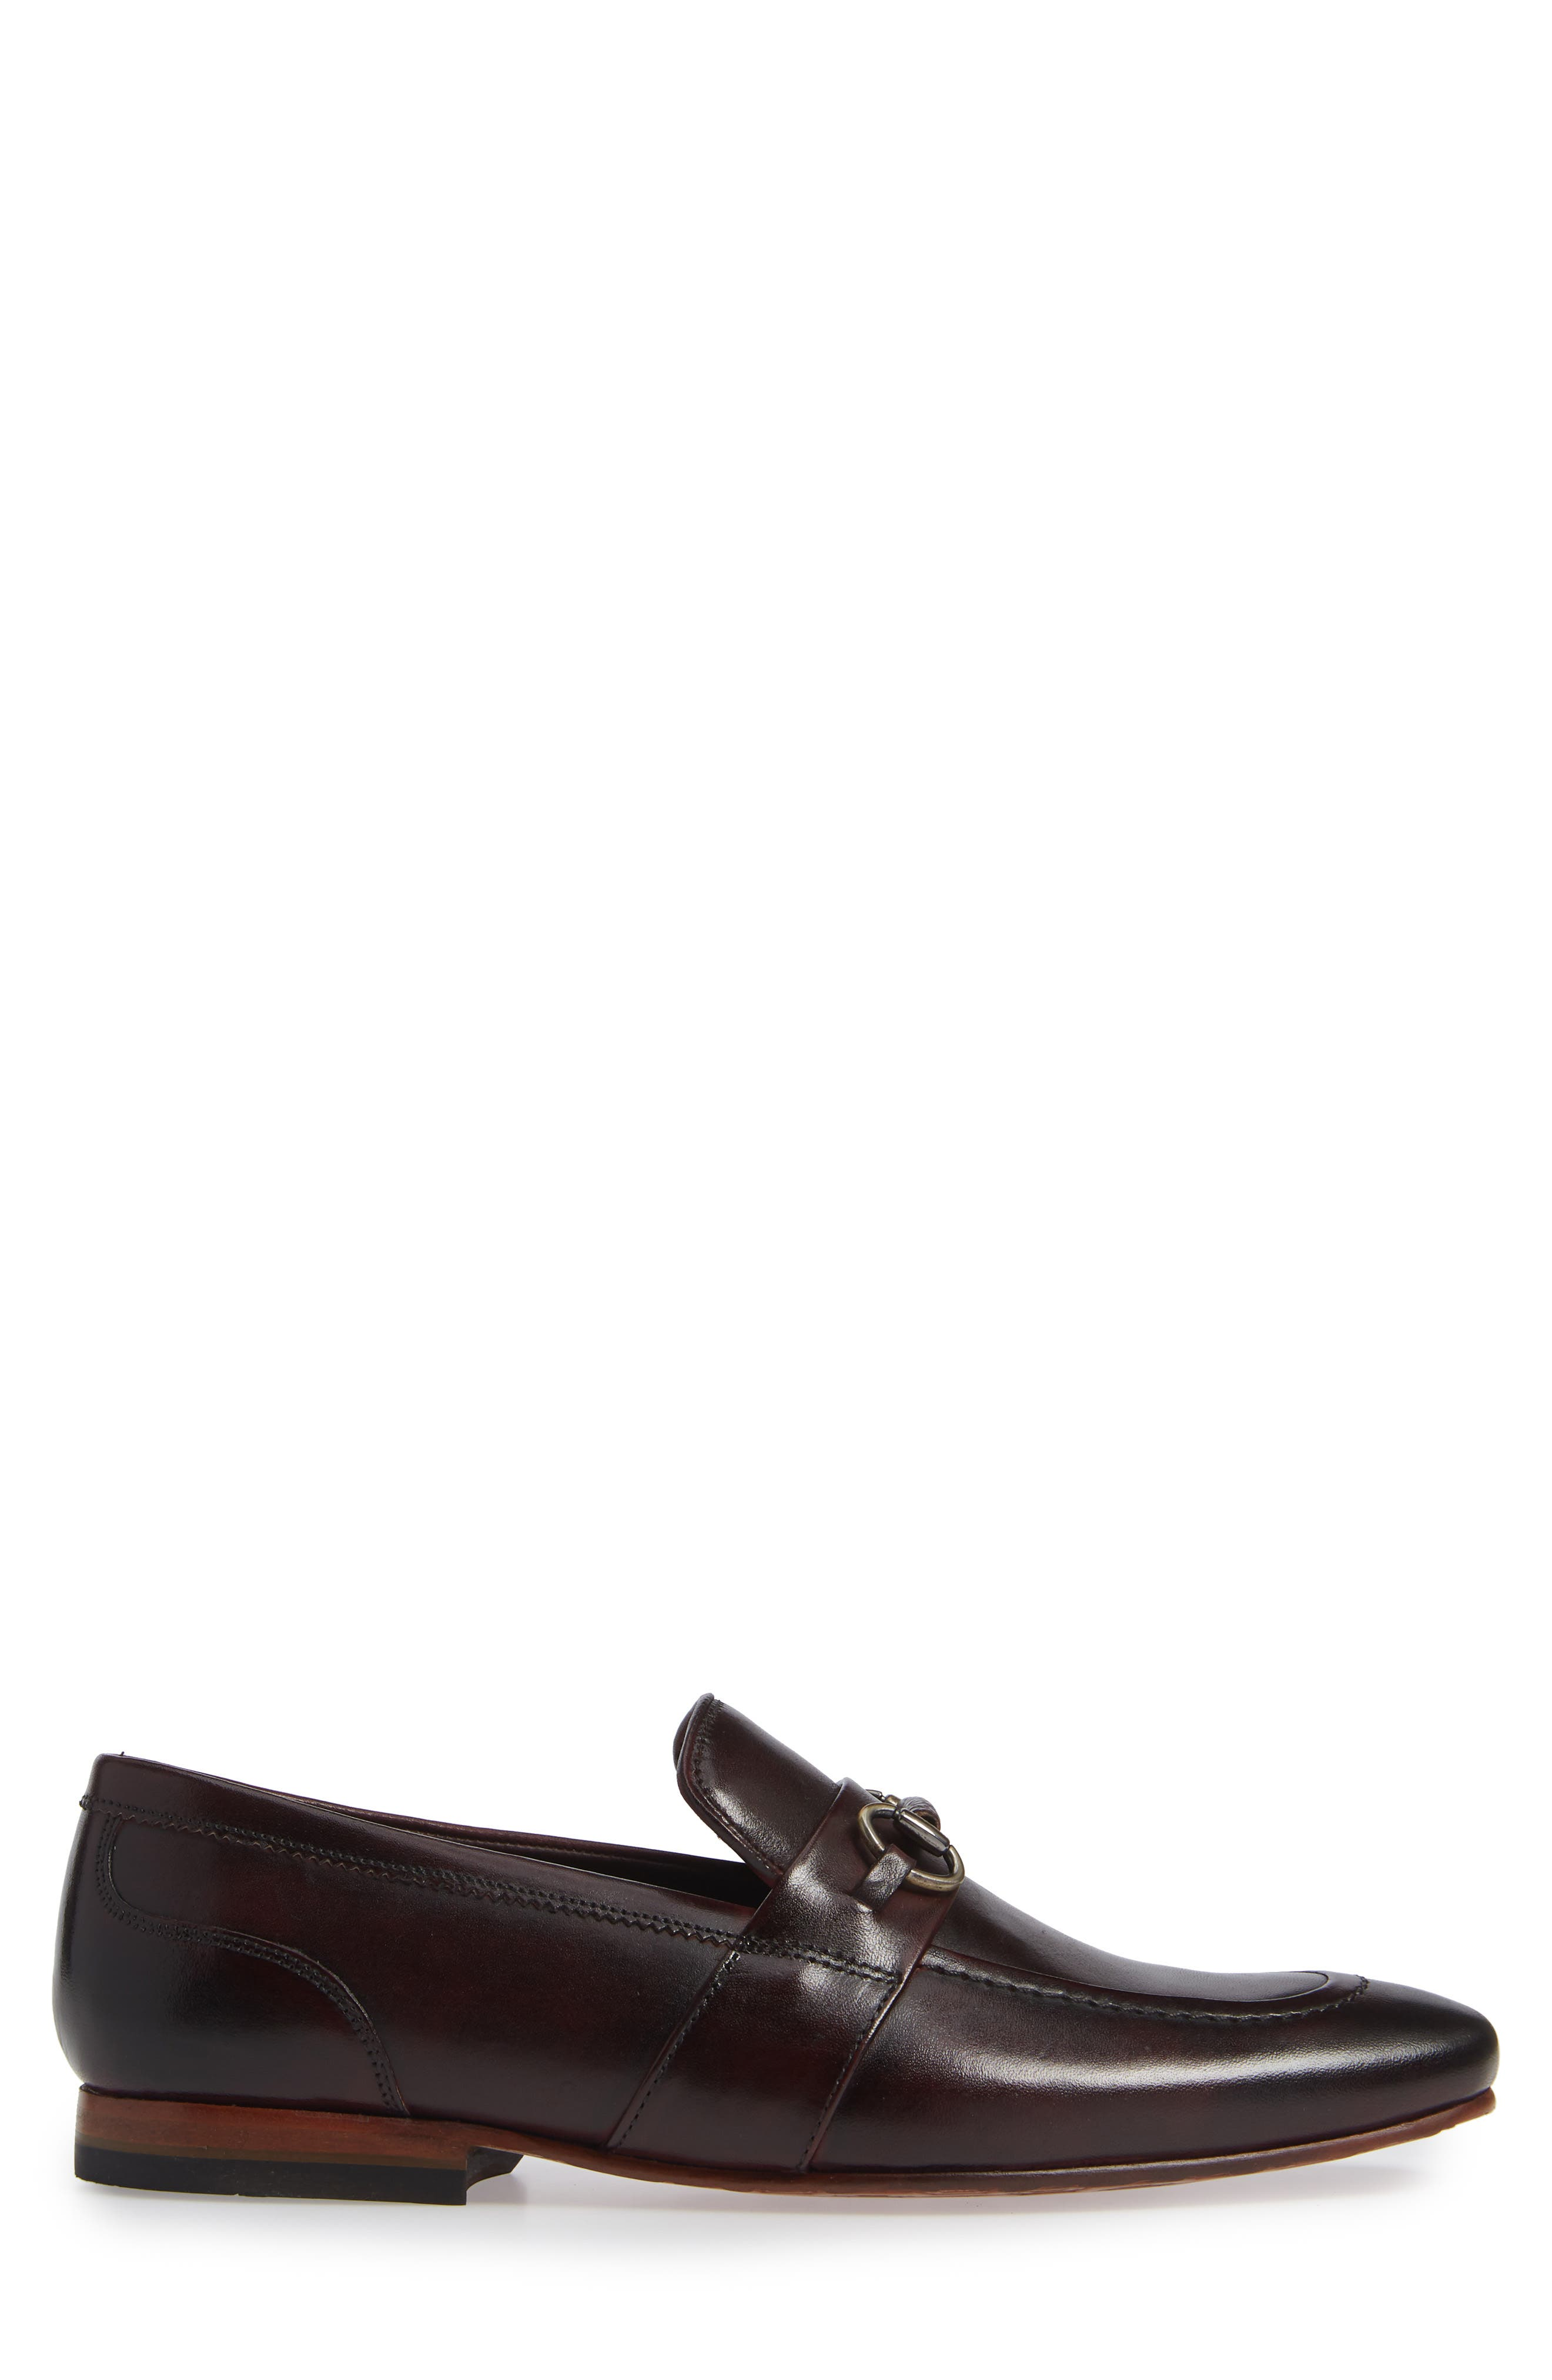 Daiser Bit Loafer,                             Alternate thumbnail 3, color,                             DARK RED LEATHER